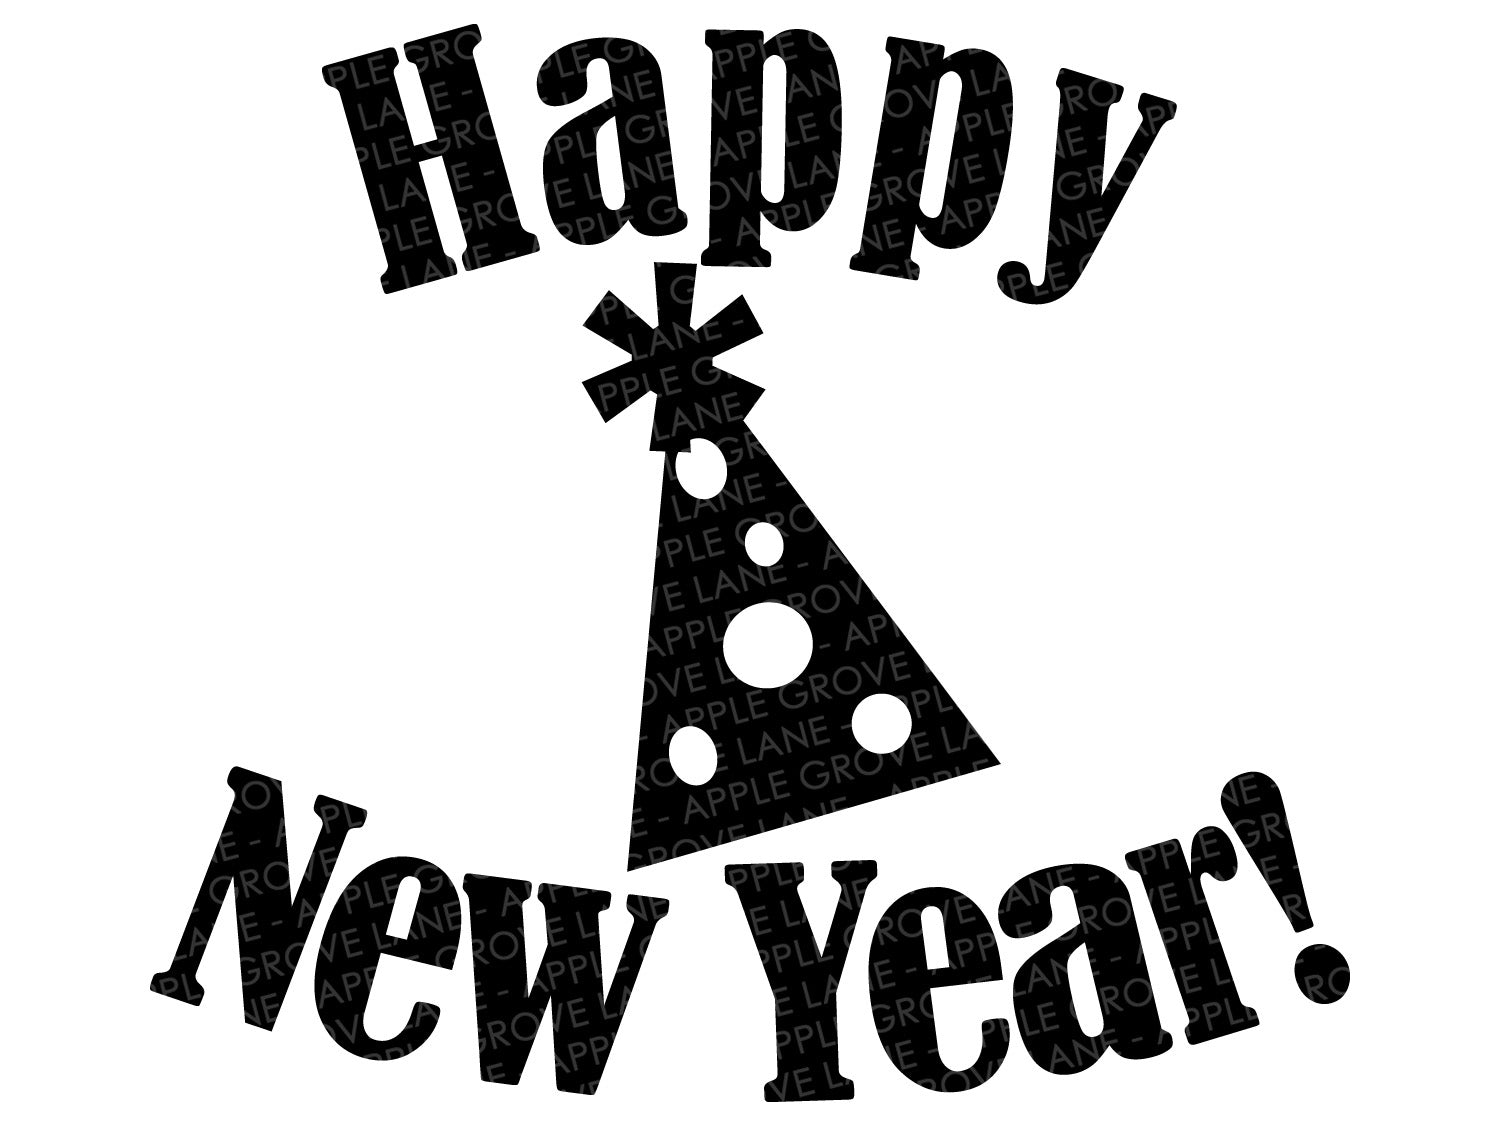 Happy New Year Svg - New Year Svg - New Year Hat Svg - Party Hat Svg - New Years Party Svg - New Years Eve Svg - Party Svg - Svg Eps Dxf Png